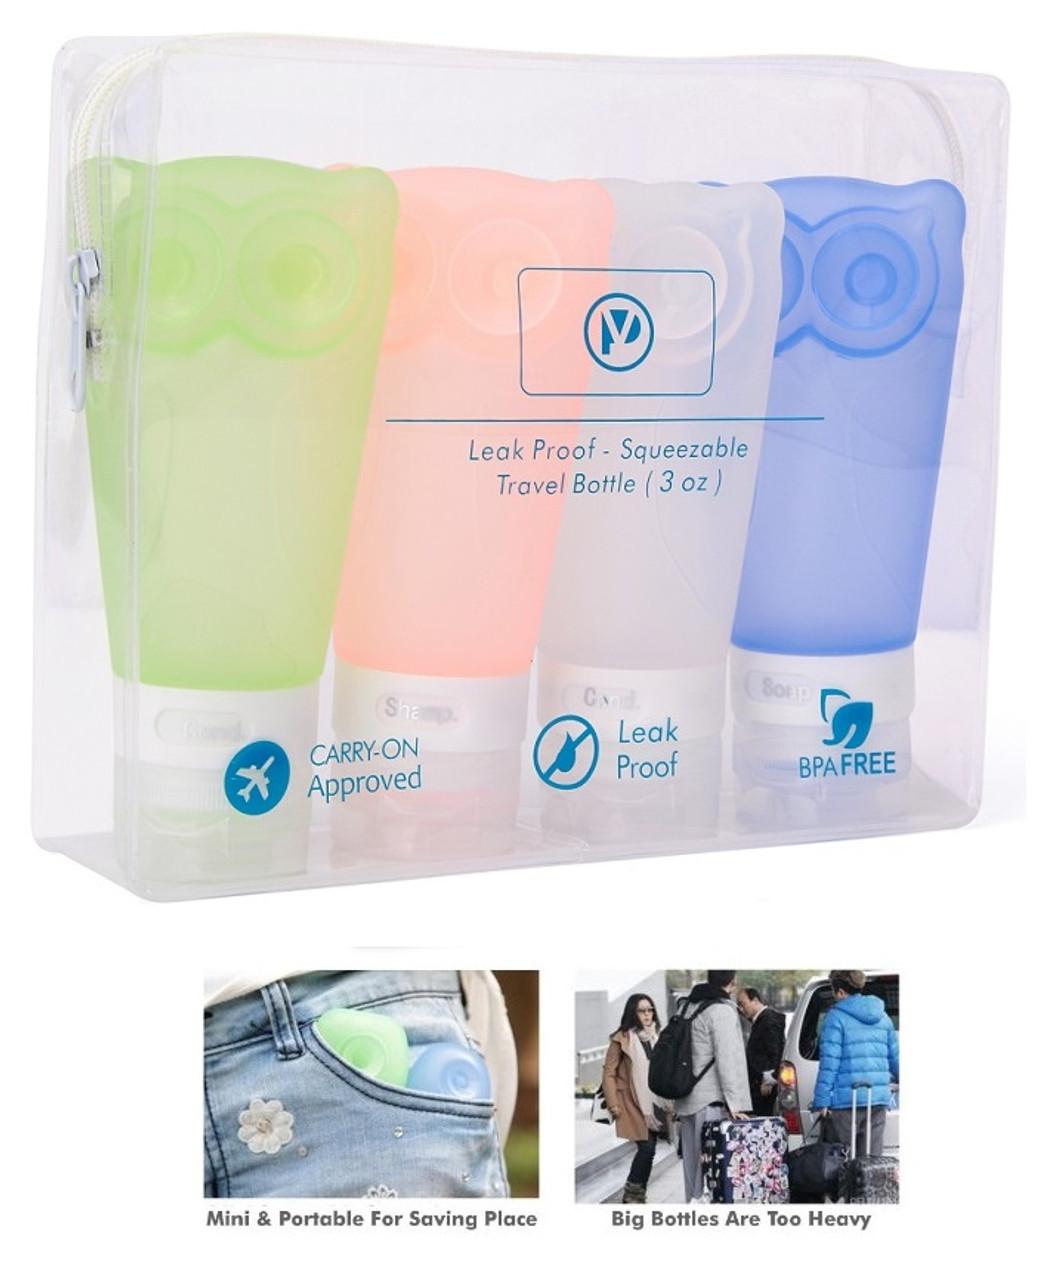 46137fb32308 Travel Bottles Leak Proof Travel Toiletry Silicone Bottles set of 4 pack